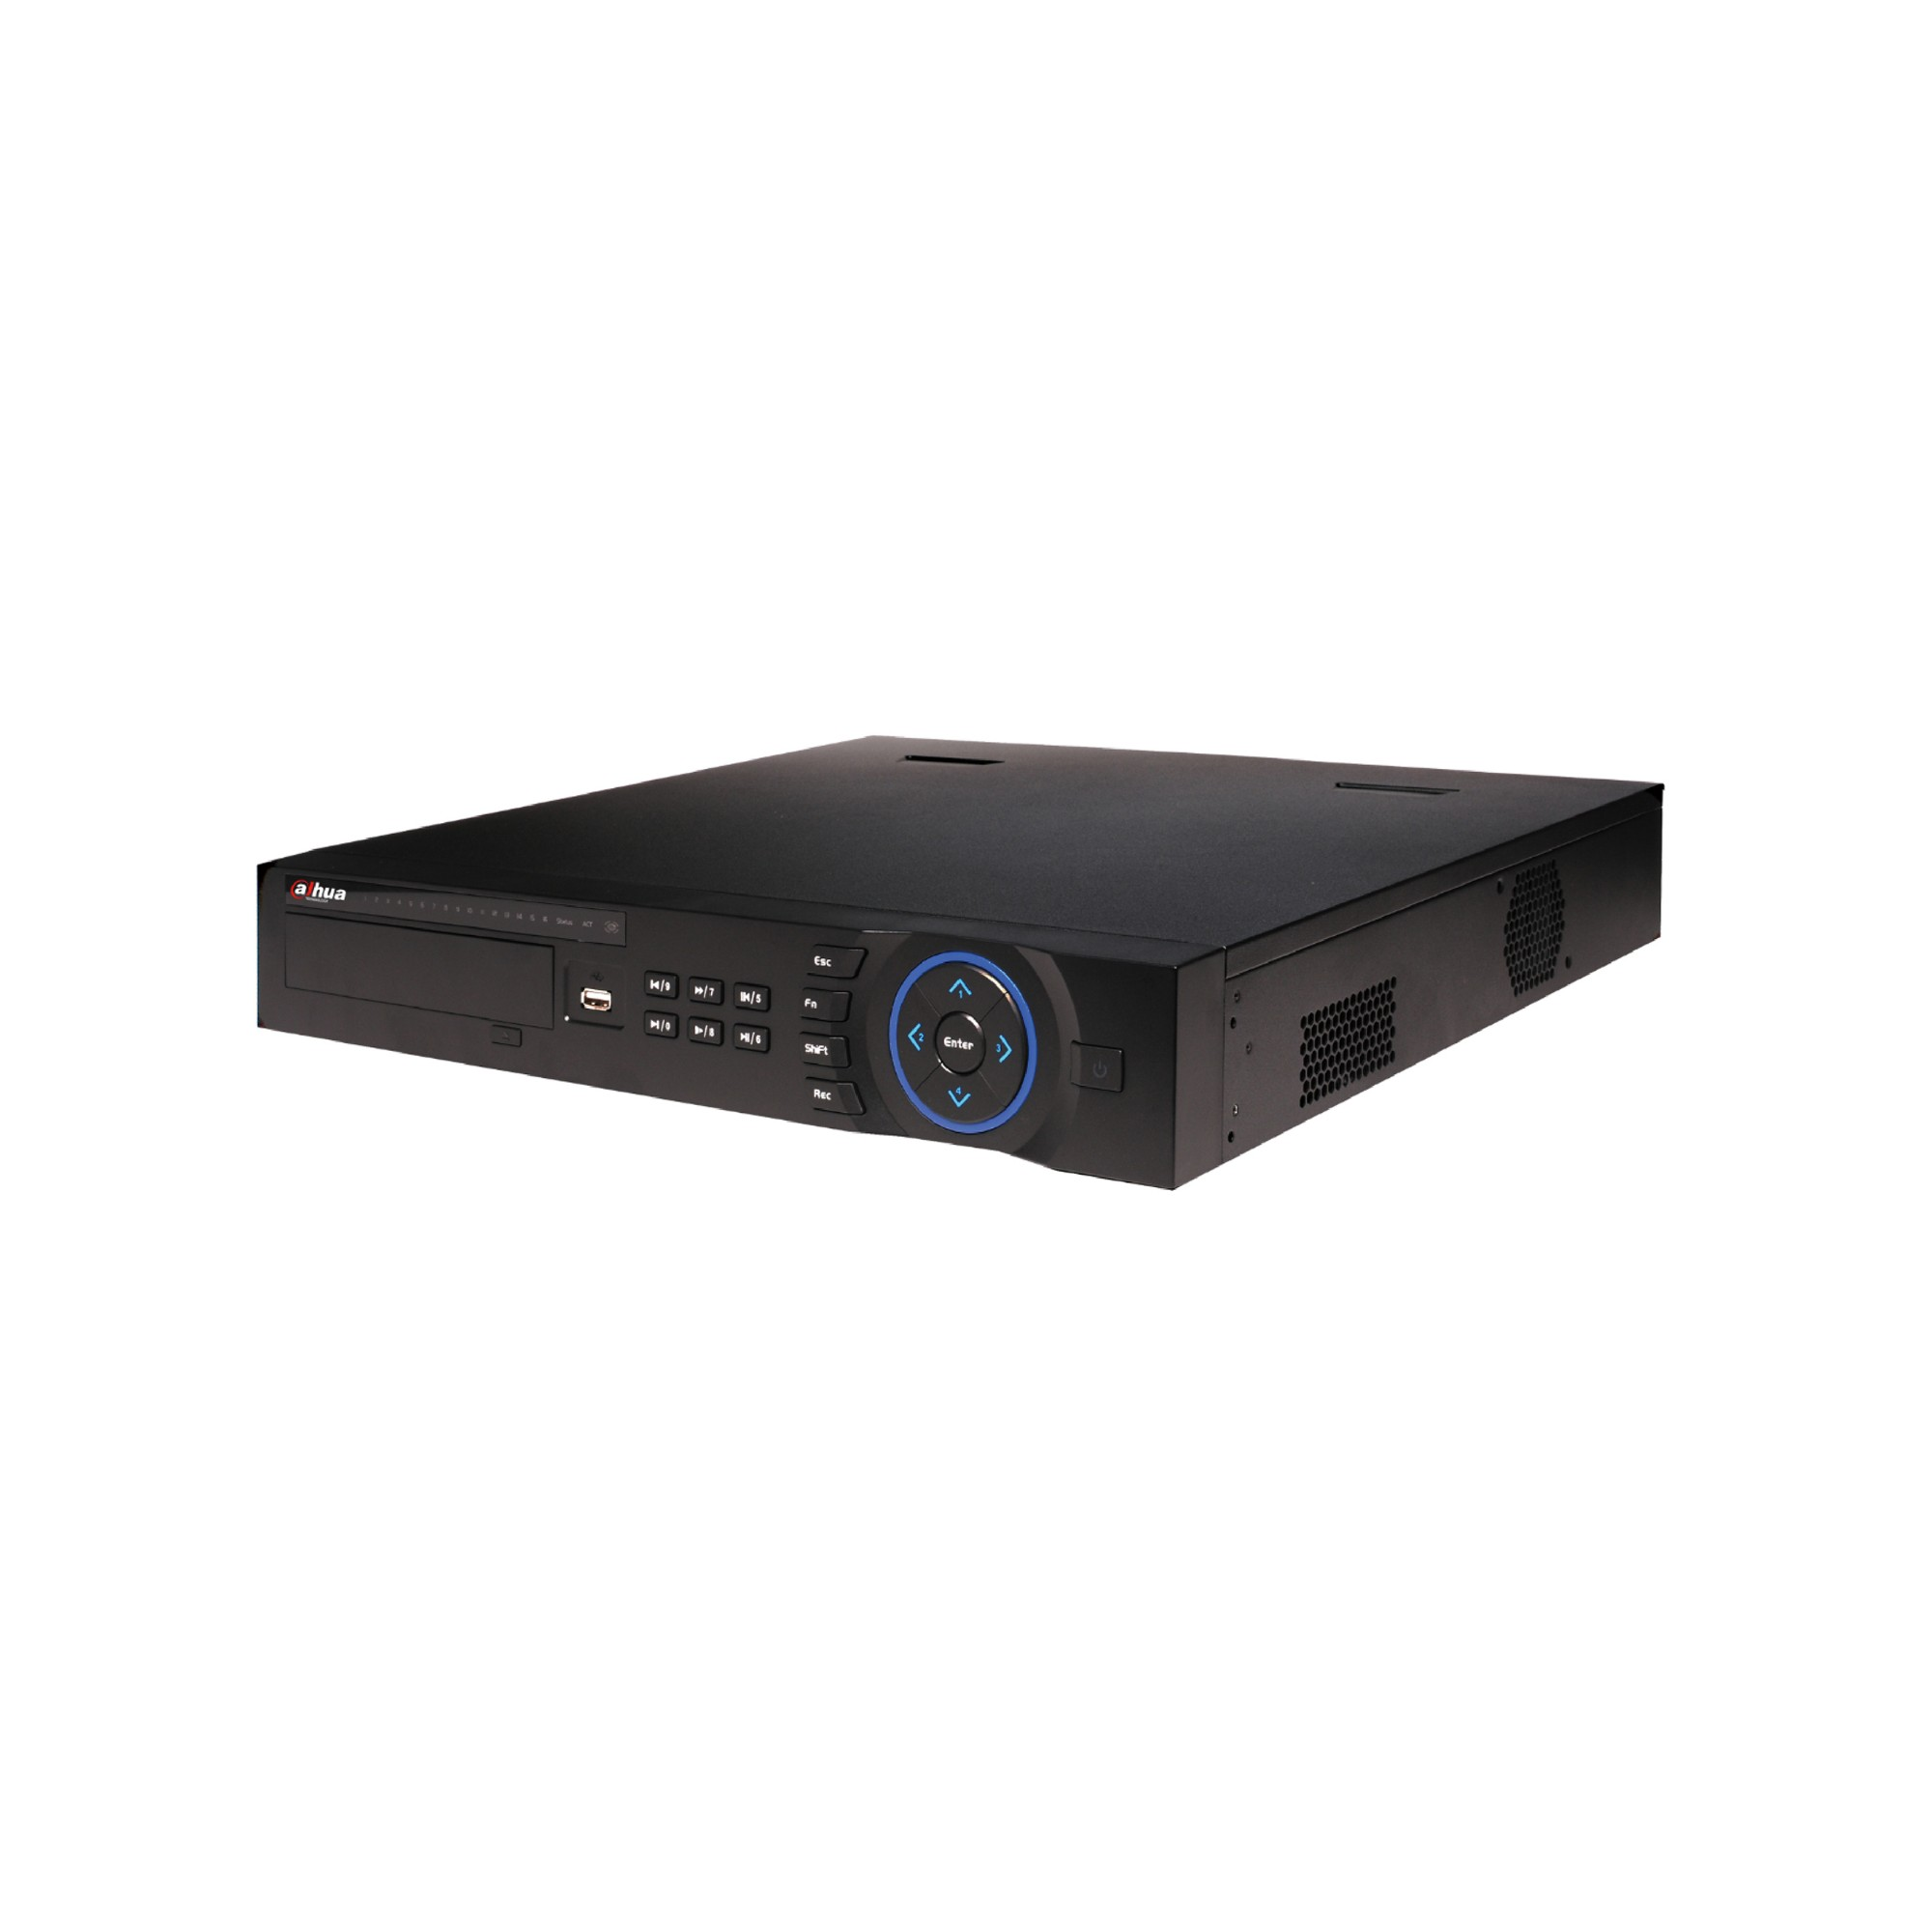 Dahua Europe Lite NVR4416-16P 1.5U Black network video recorder